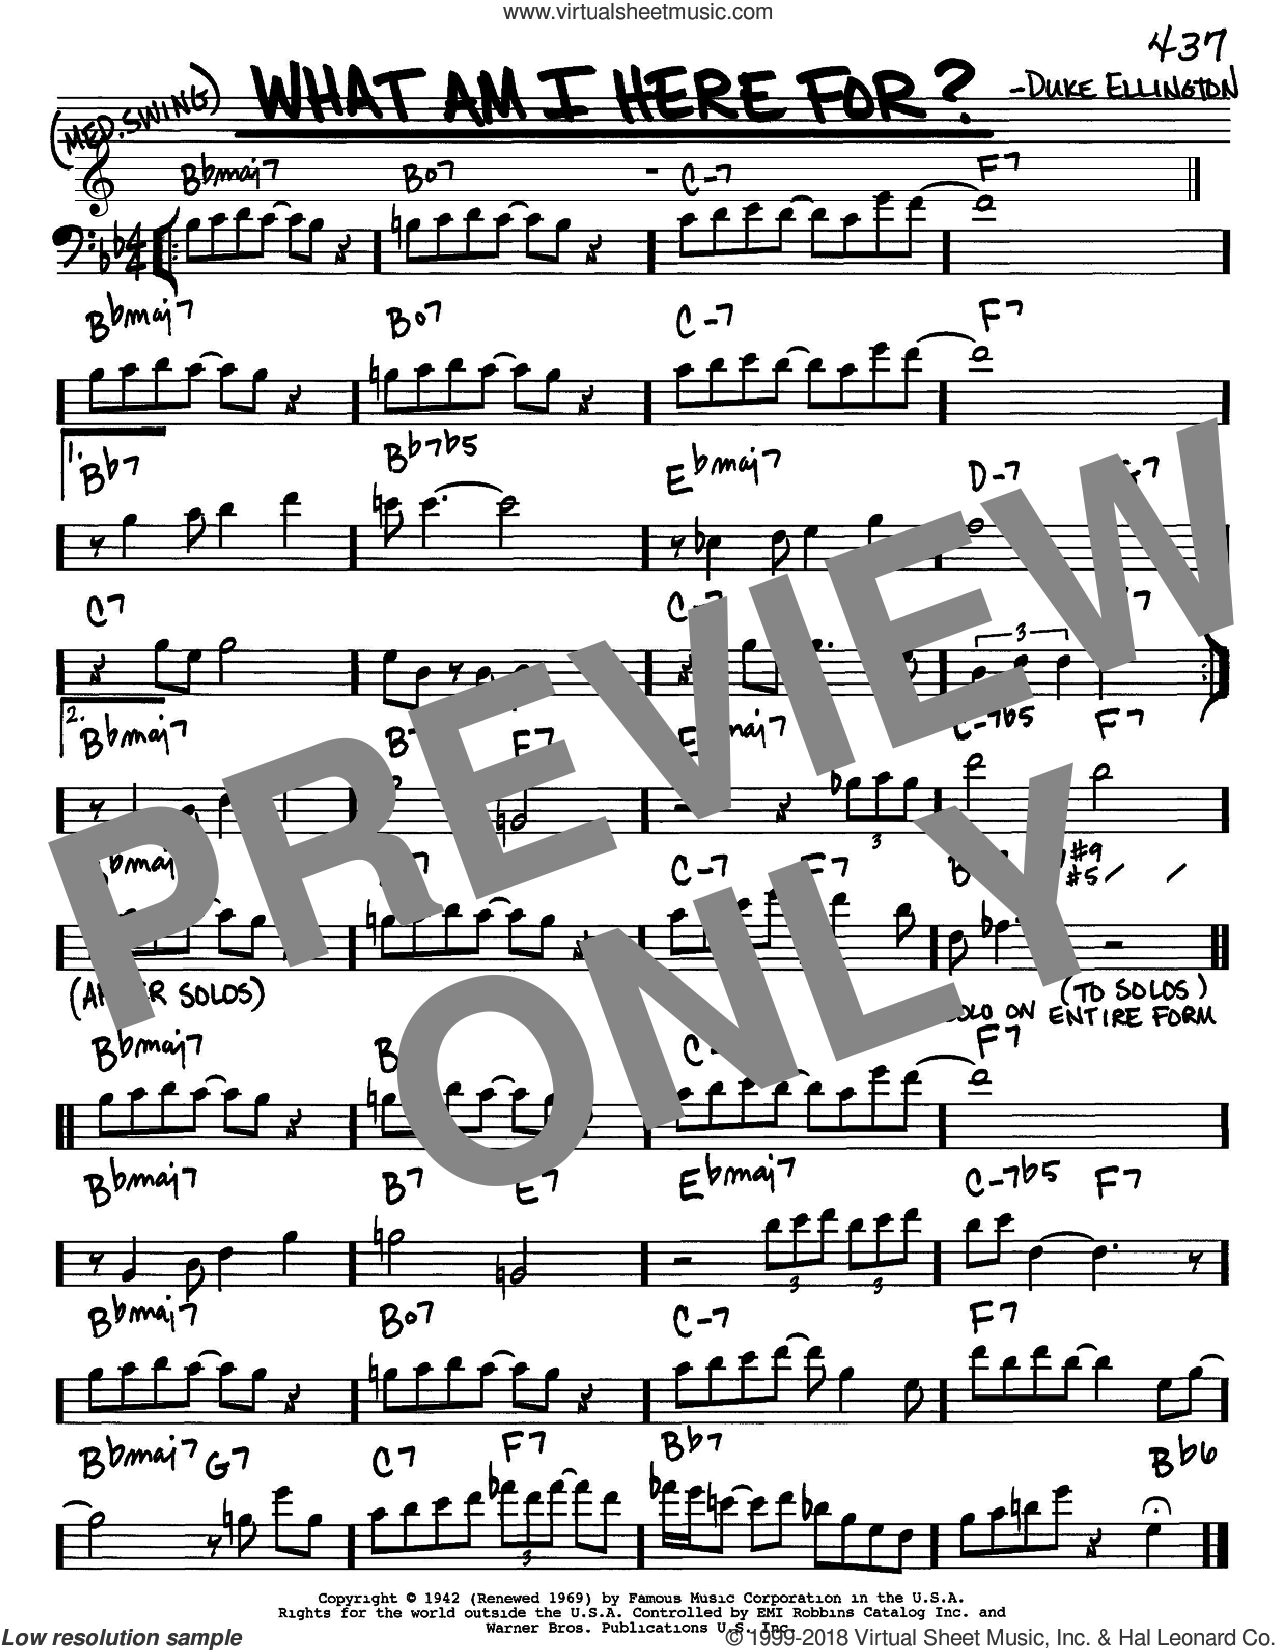 What Am I Here For? sheet music for voice and other instruments (bass clef) by Duke Ellington, intermediate. Score Image Preview.